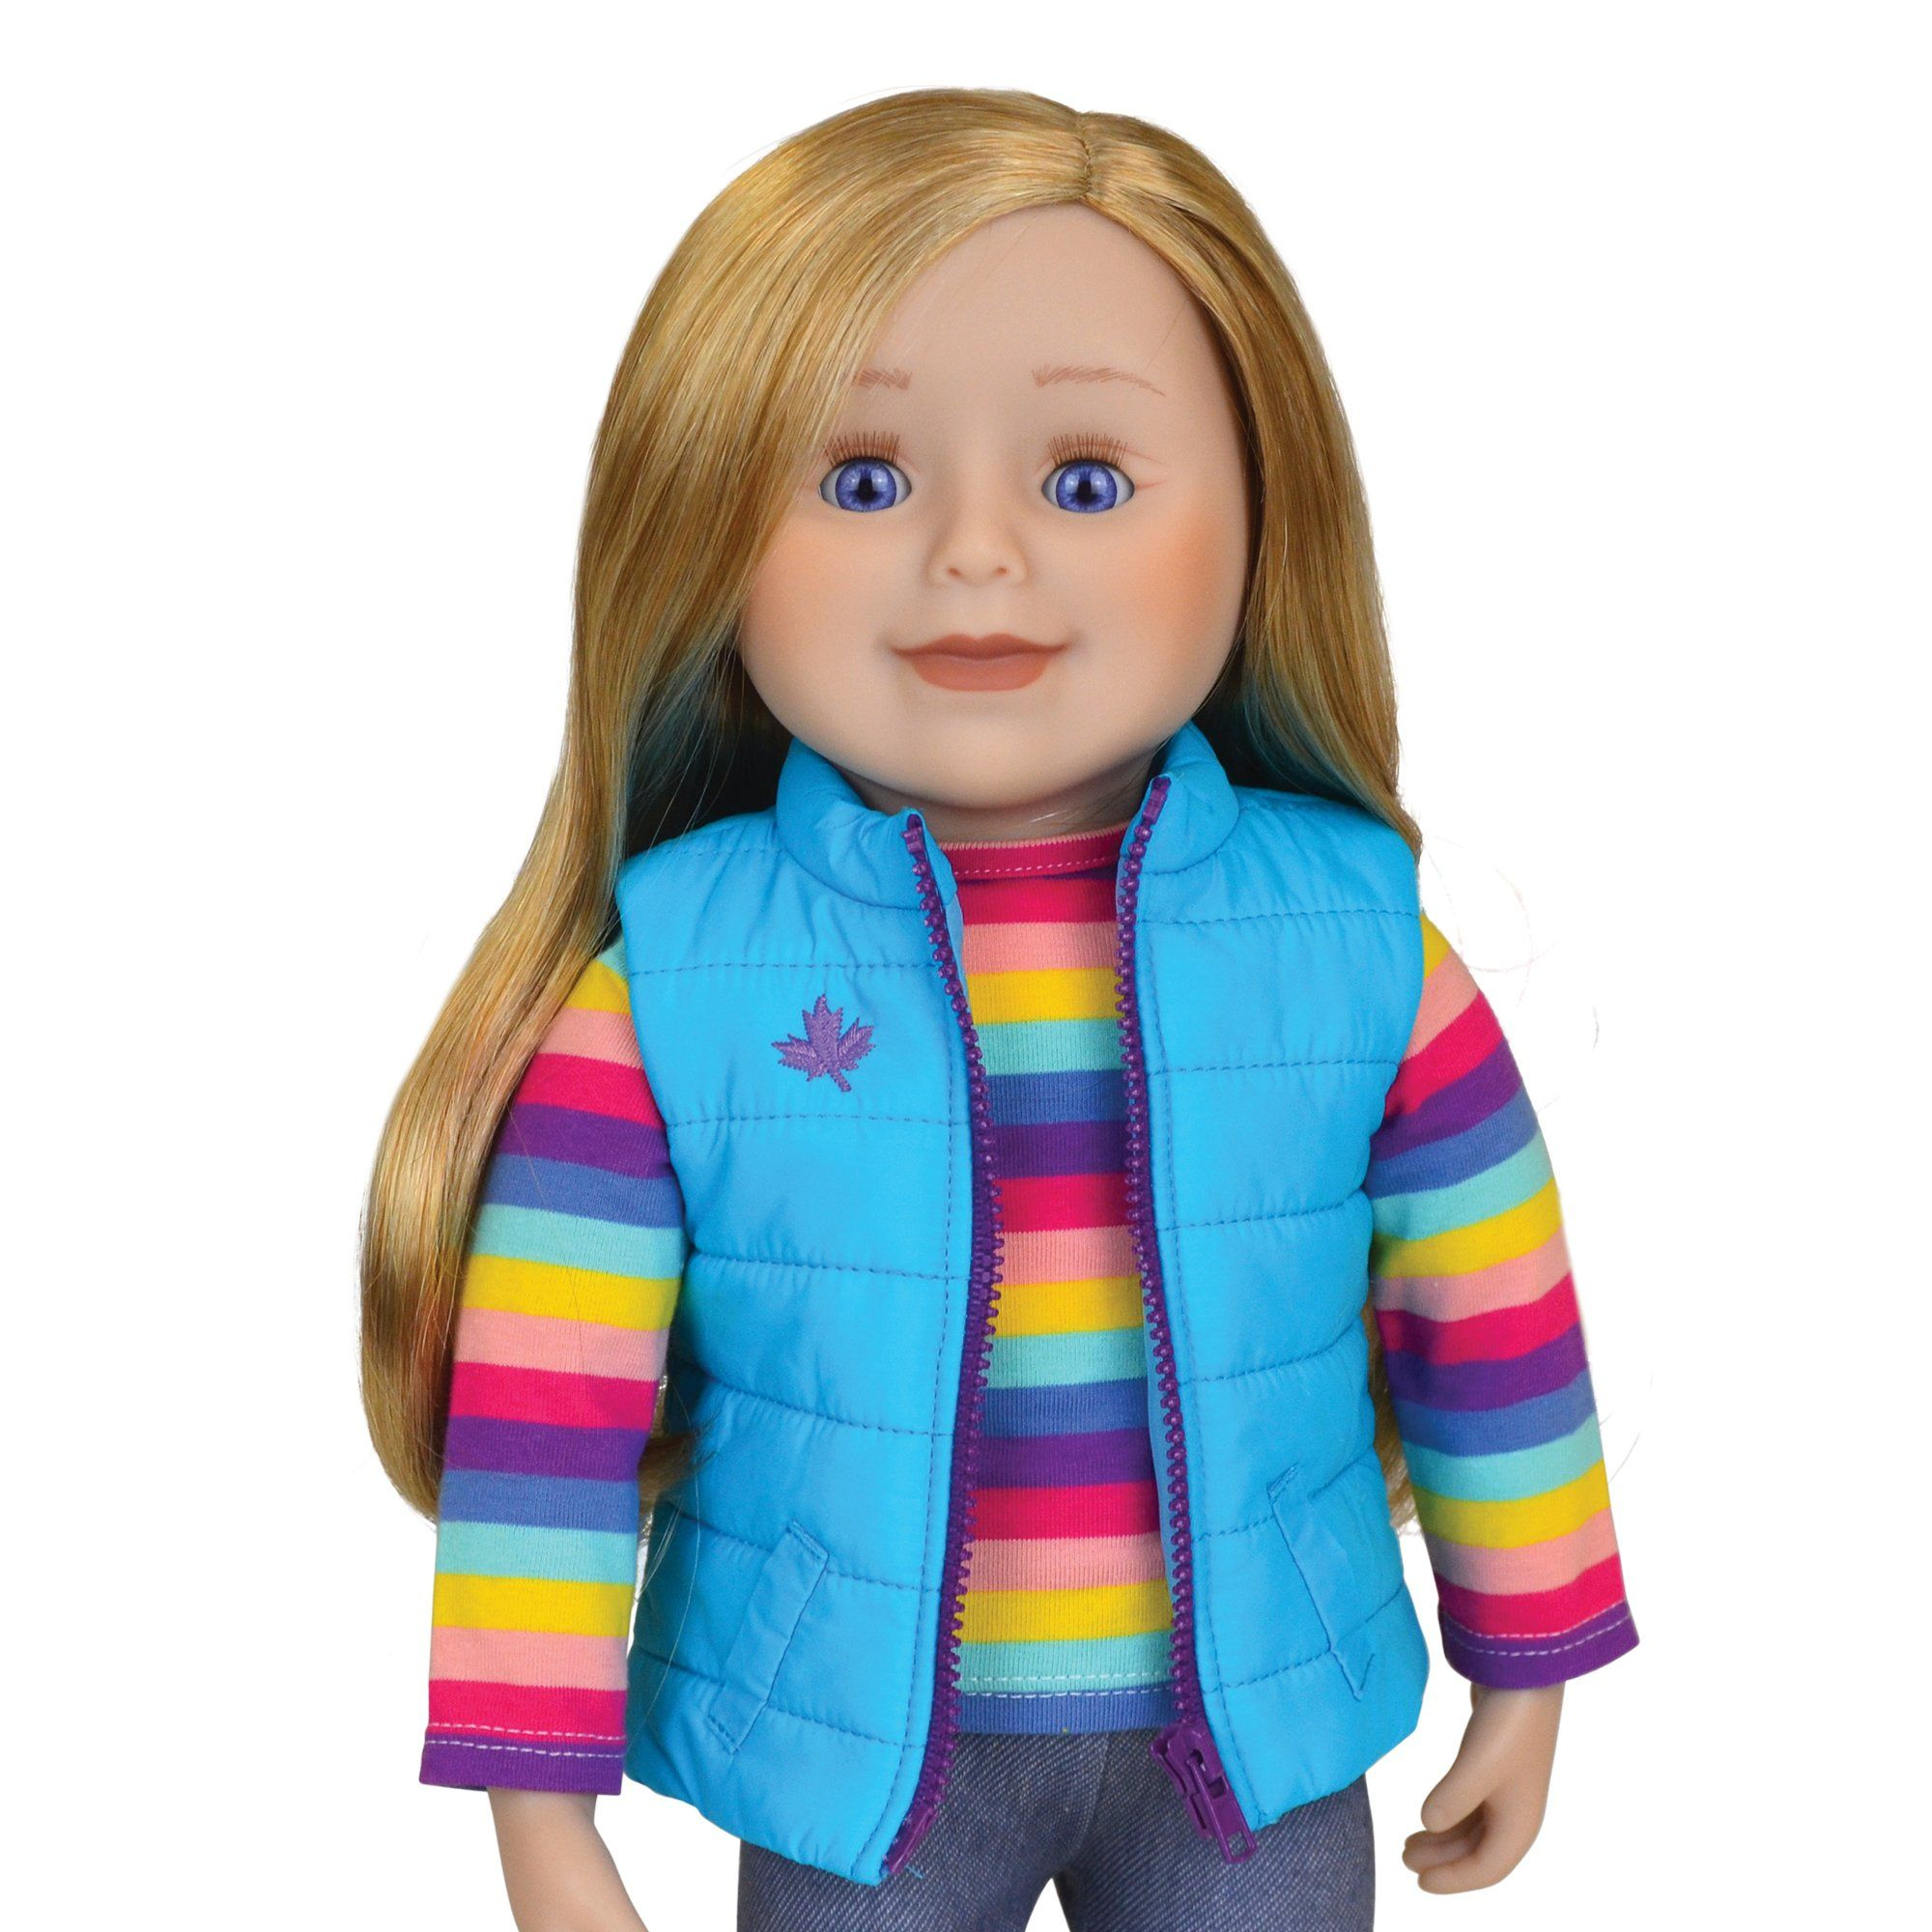 18 inch Maplelea doll with blonde hair and blue eyes